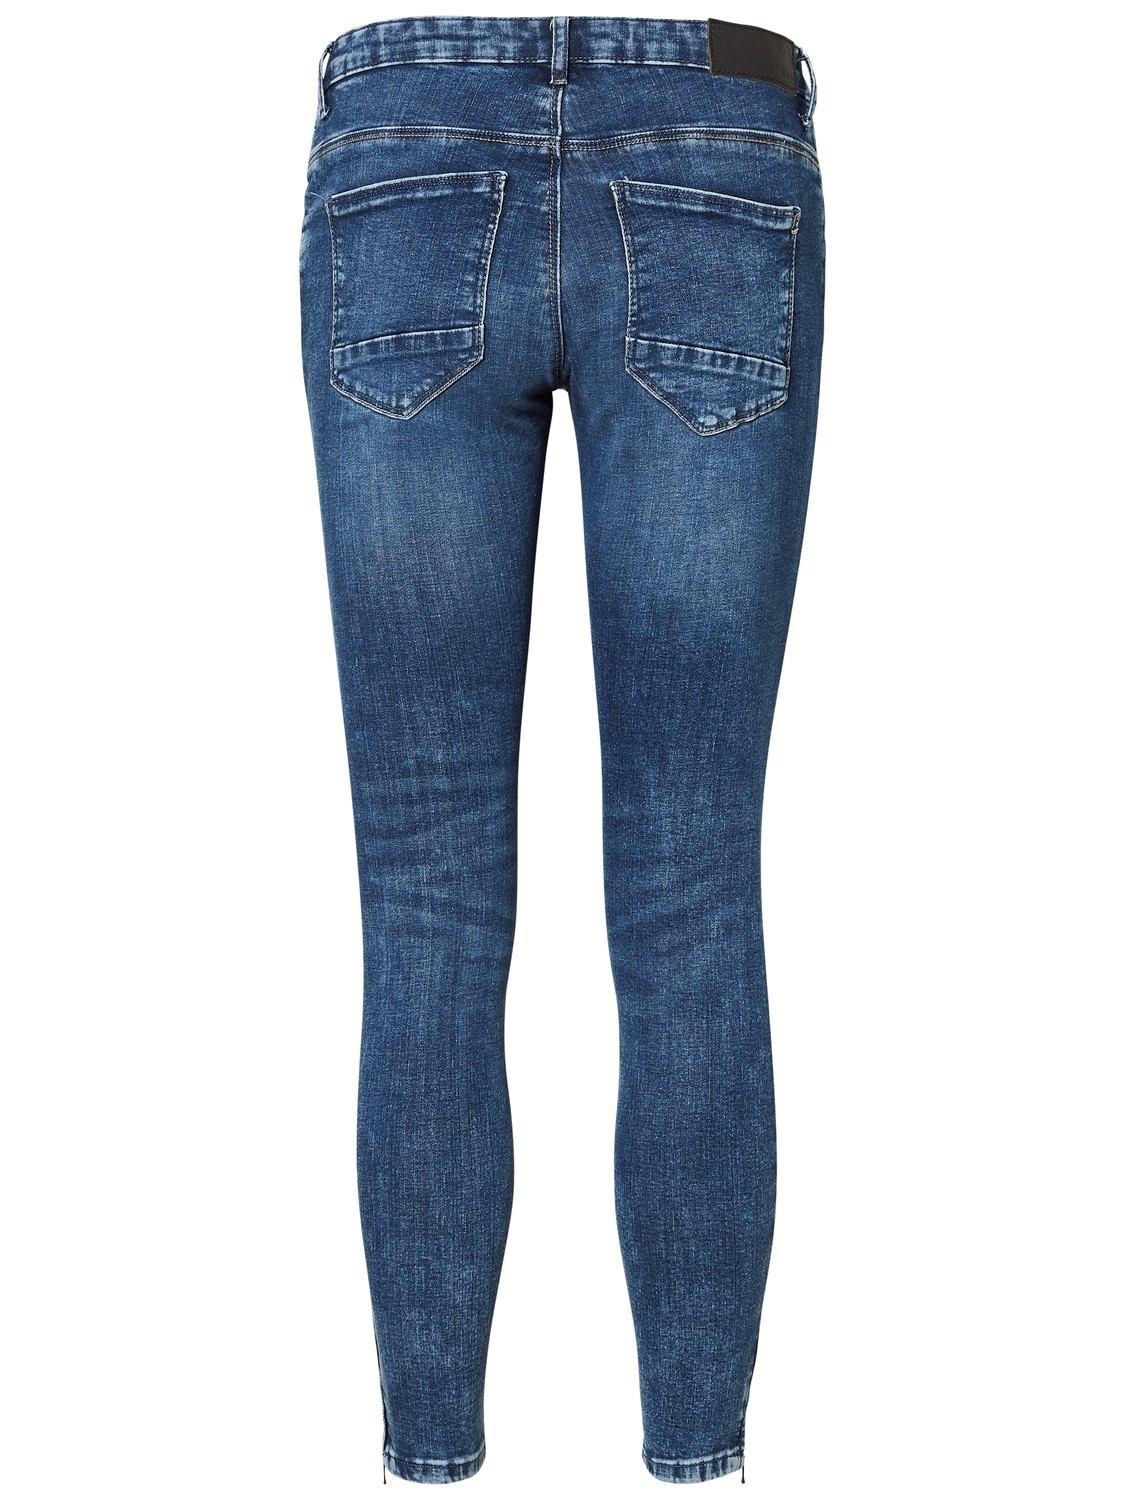 noisy-may-damen-jeans-nmkimmy-nw-ankle-zip-jeans-az003mb-slim-fit-blau-medium-blue